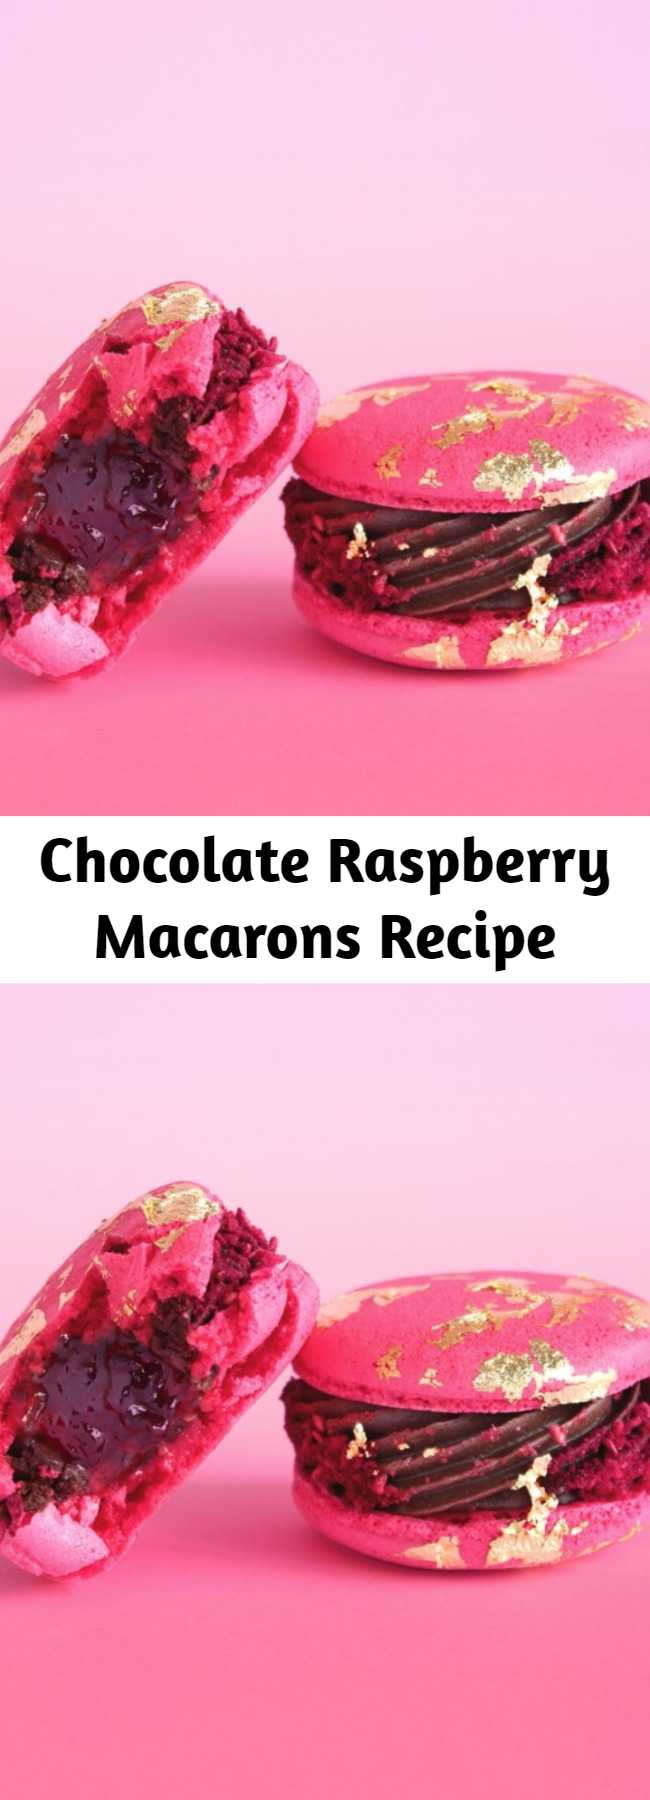 Chocolate Raspberry Macarons Recipe - All that glitters may not be gold, but these macarons are the exception.